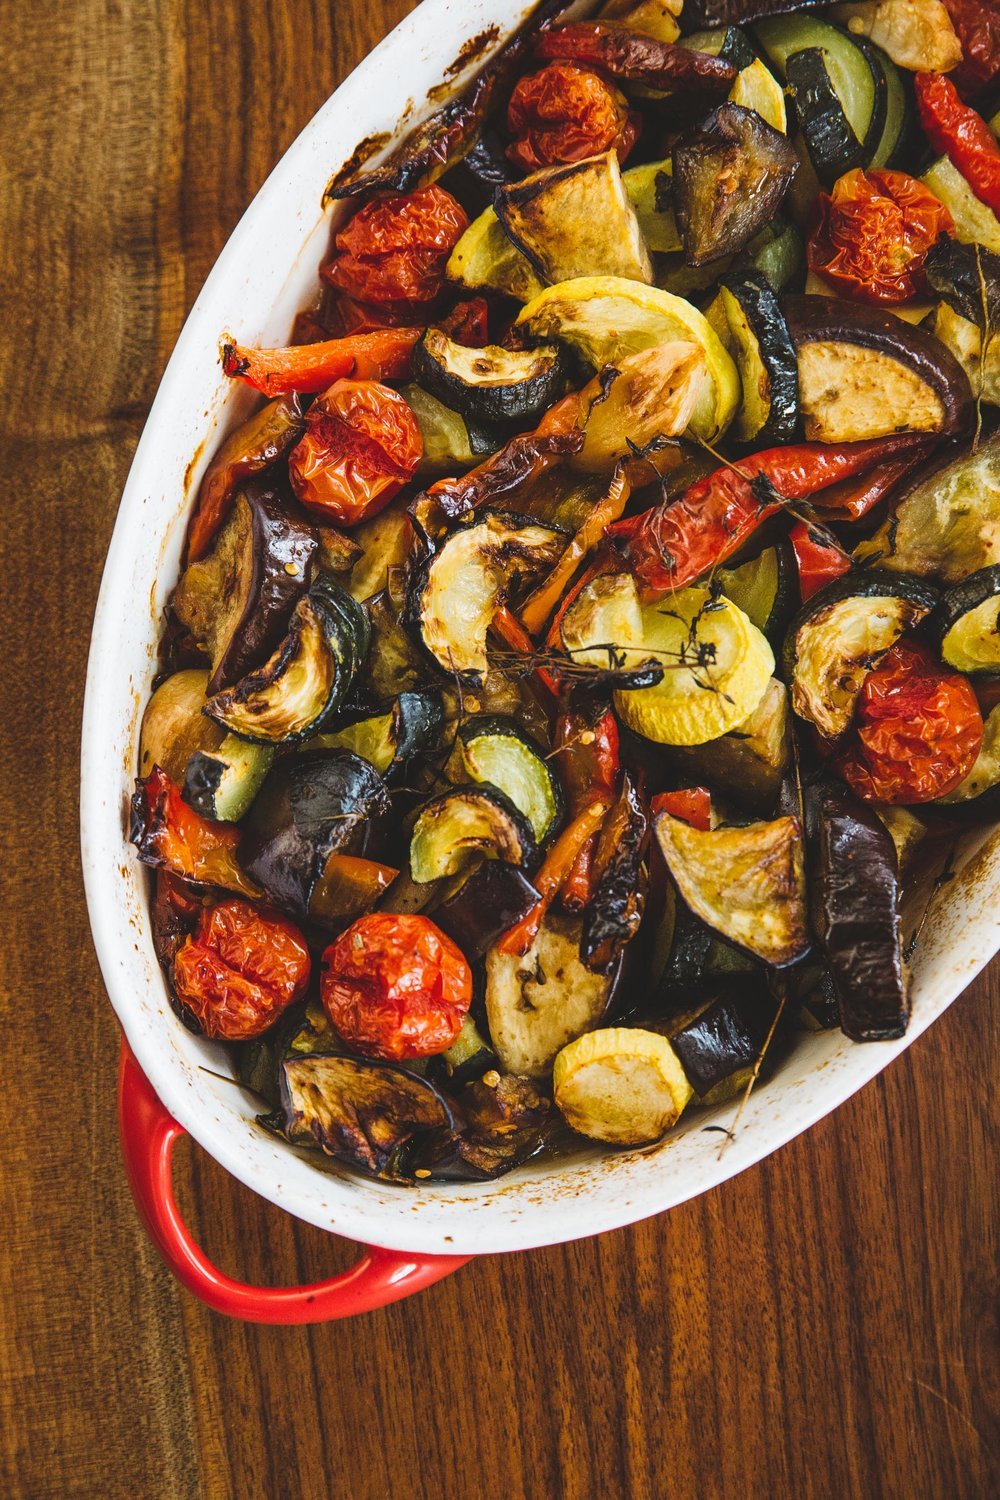 Wine Food Book Ratatouille.jpg